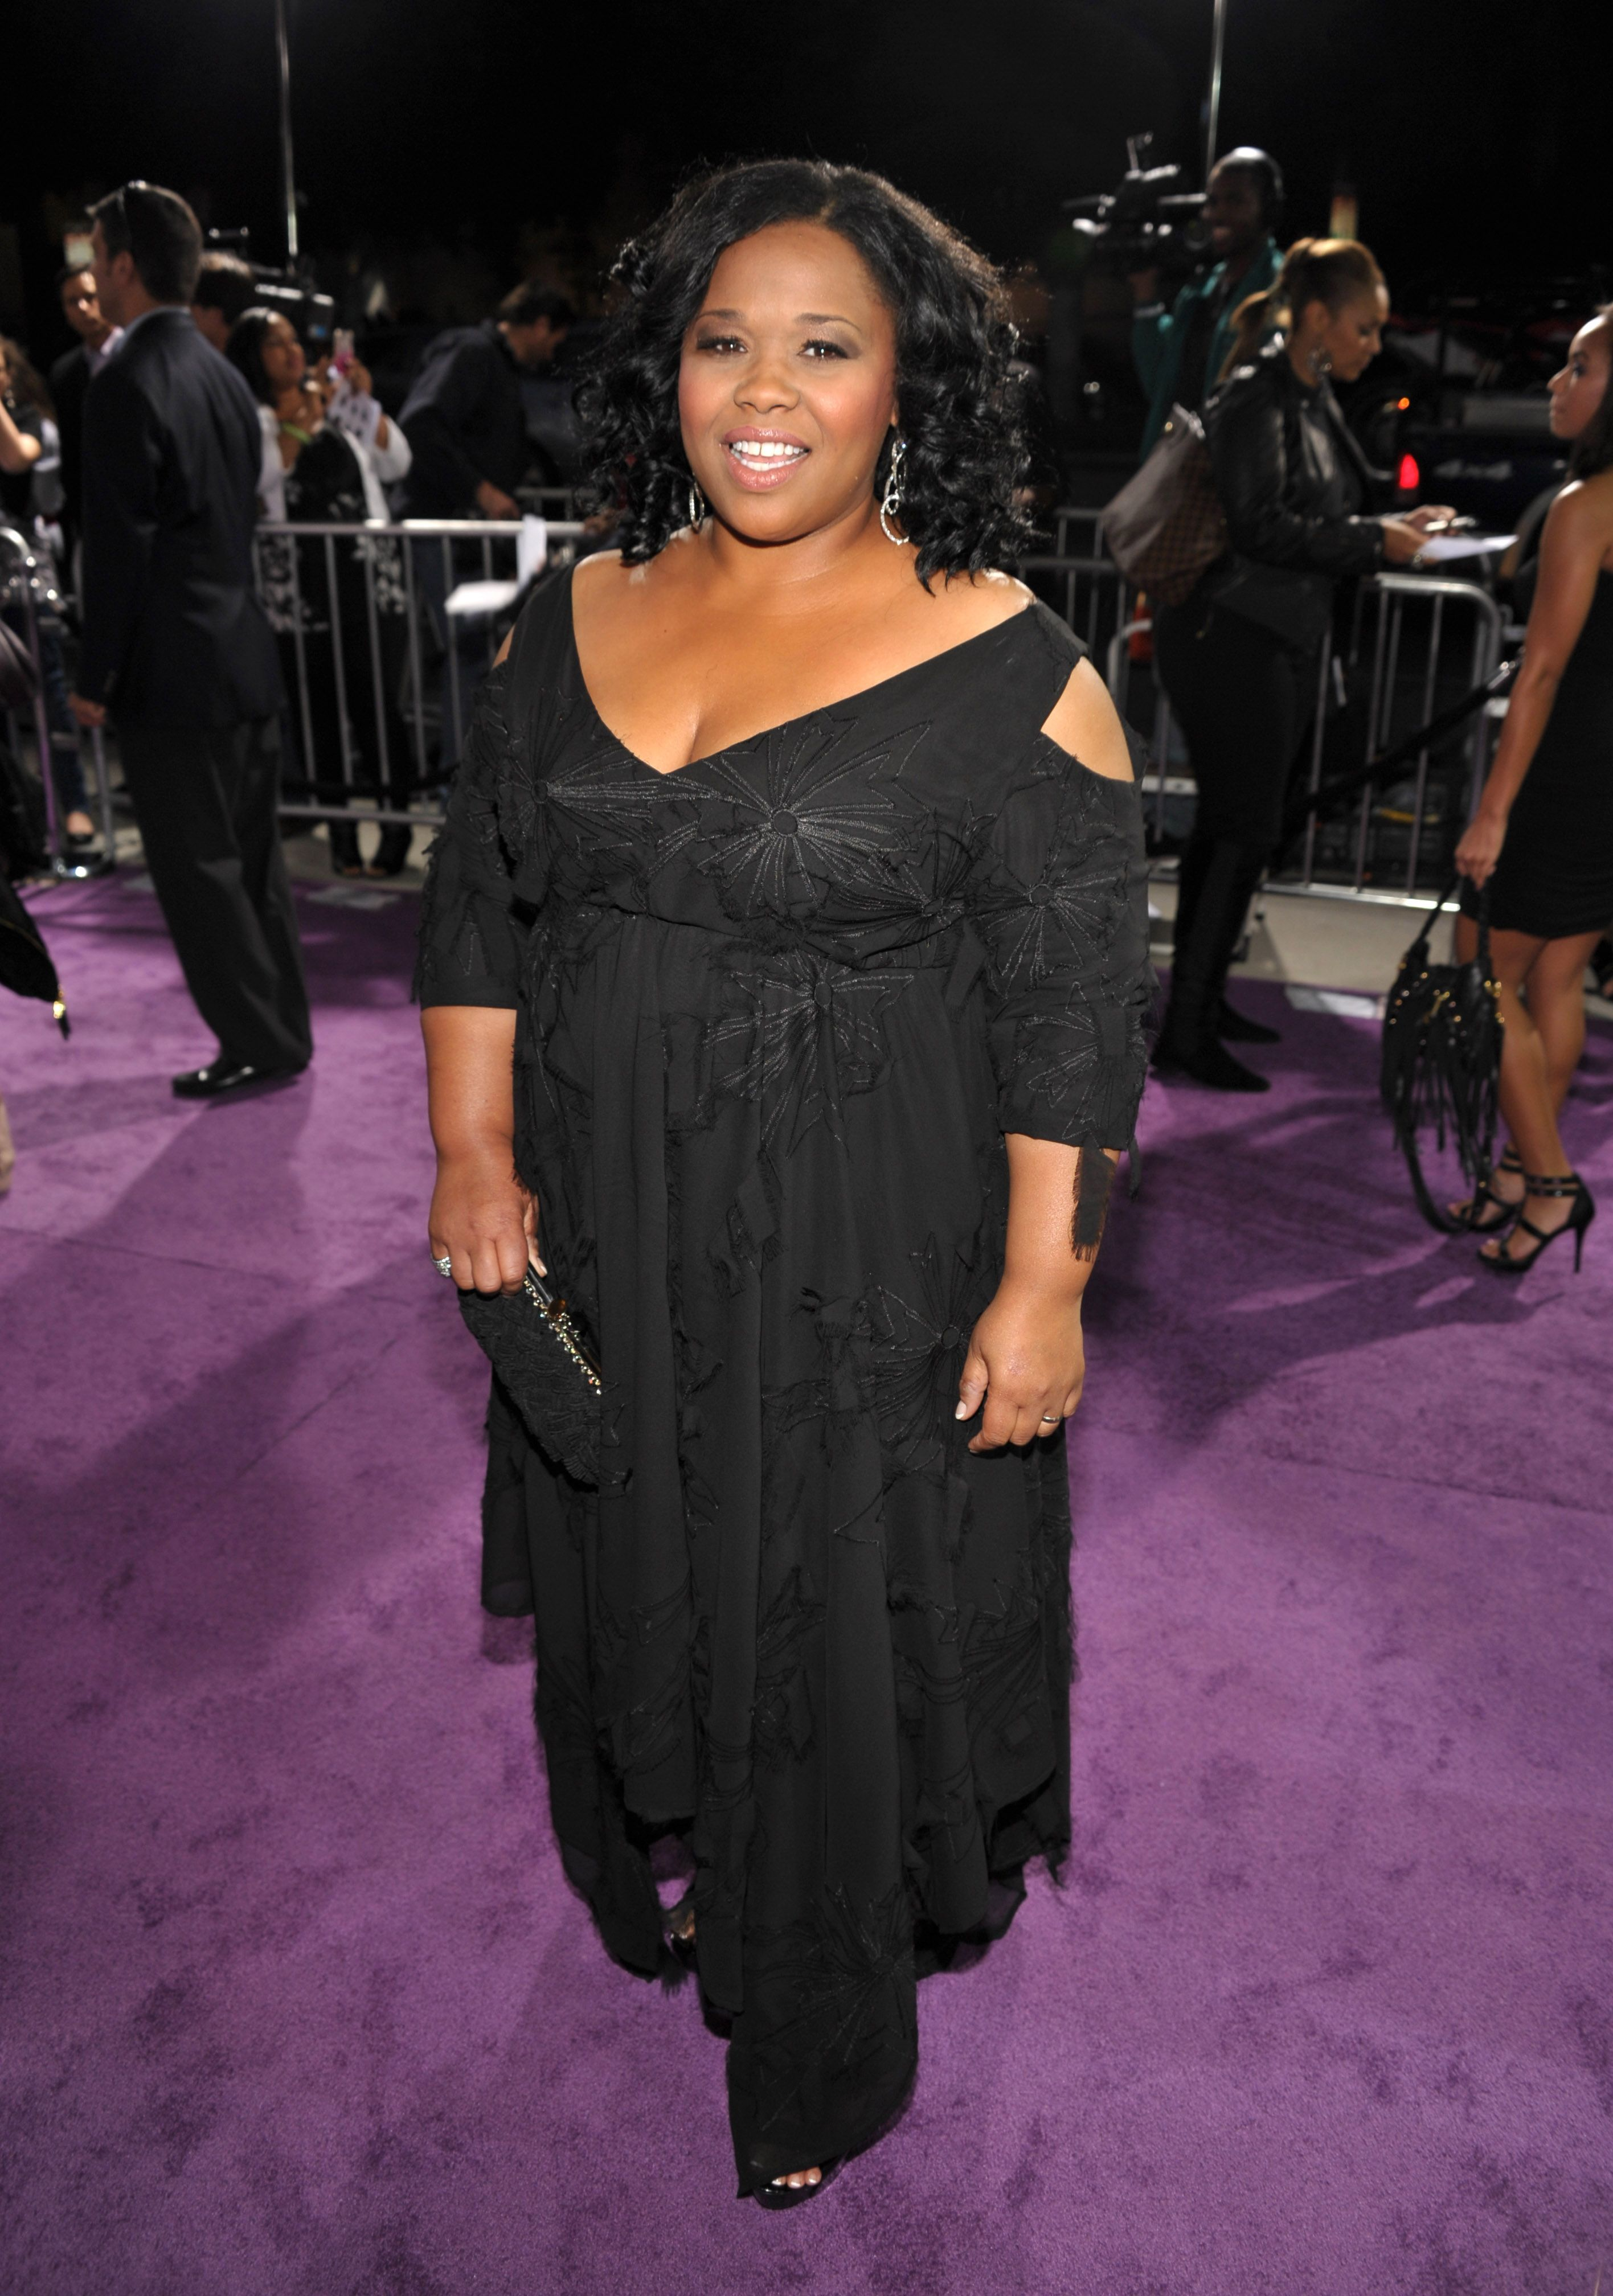 """Natalie Desselle at the premiere of """"Tyler Perry's Madea's Big Happy Family"""" in 2011 in Hollywood, California   Source: Getty Images"""